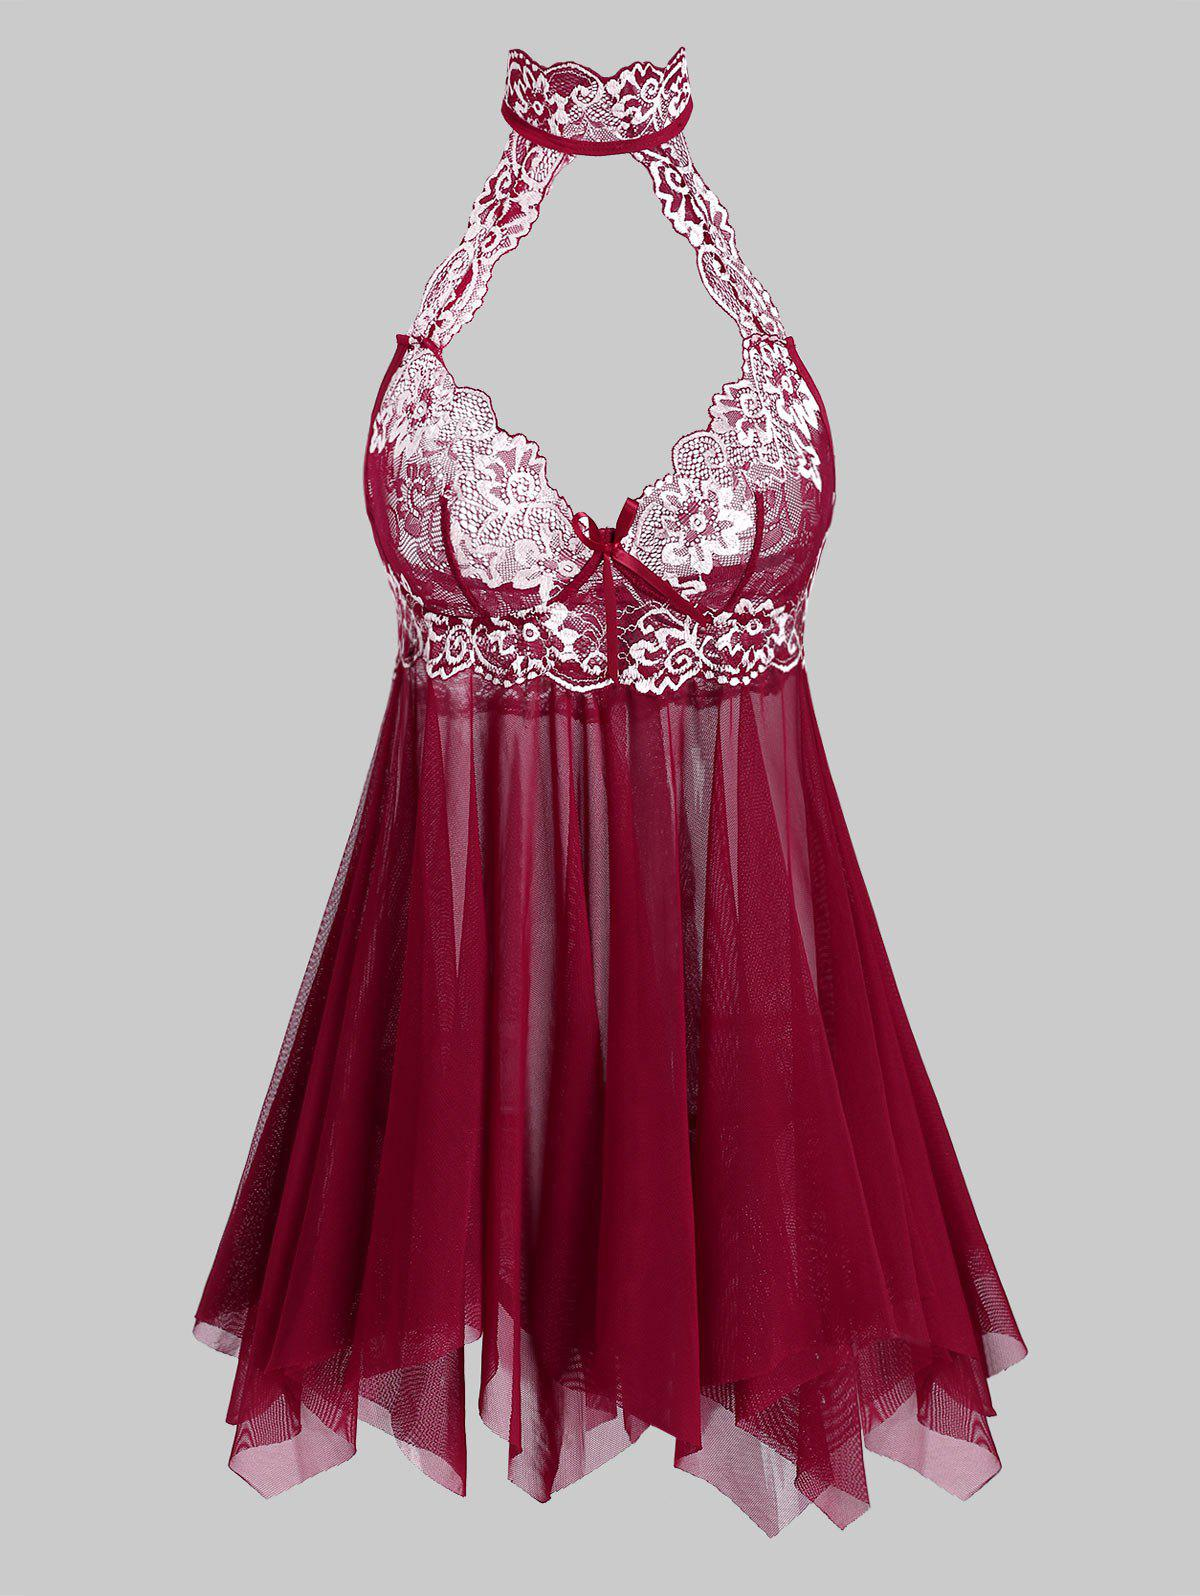 Lace Panel Cut Out Sheer Mesh Plus Size Lingerie Babydoll - RED L